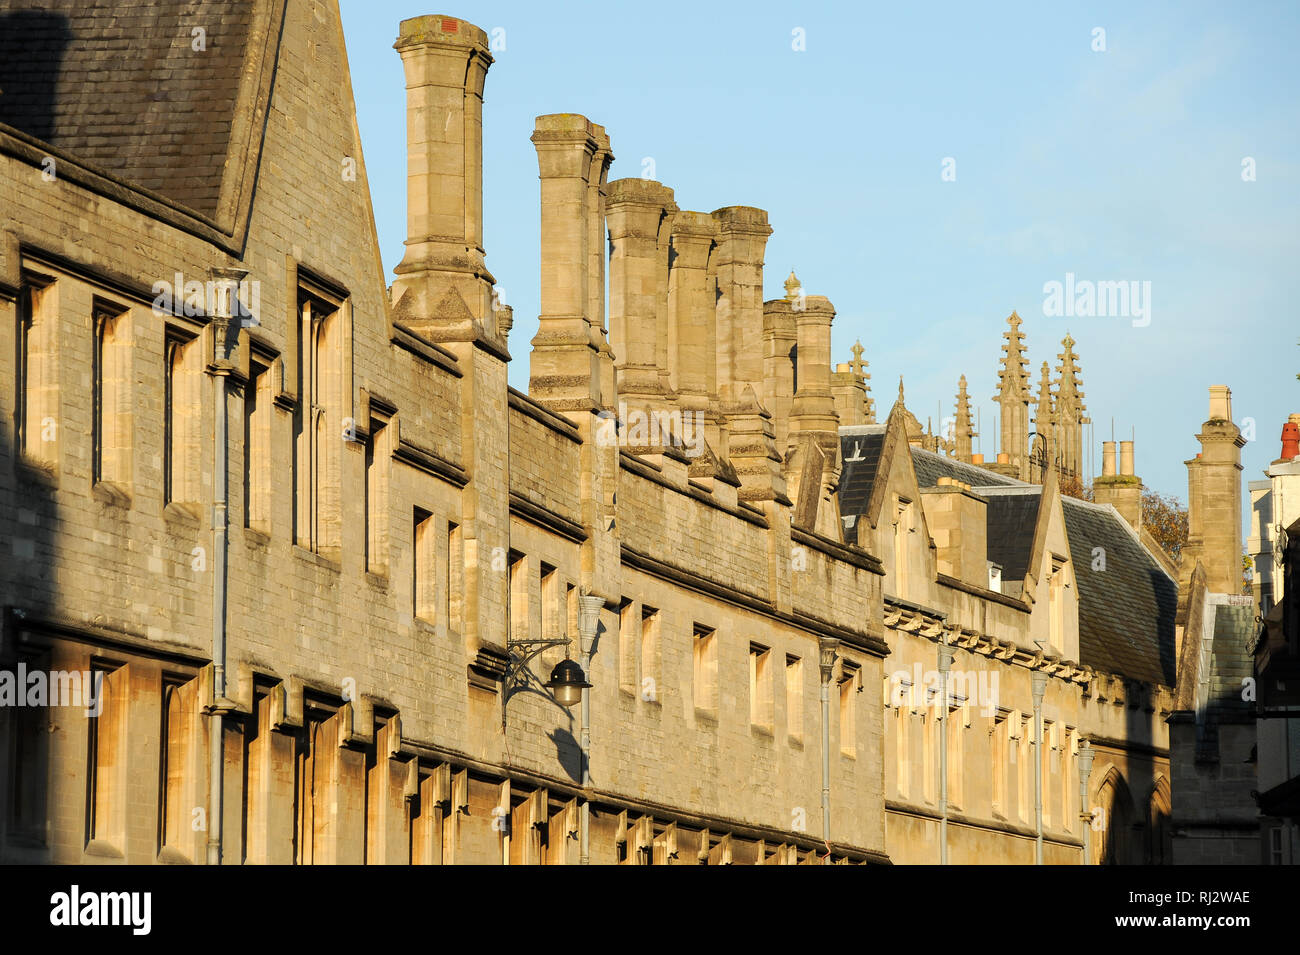 Jesus College, University of Oxford one of the oldest universities in the world. Historic Centre of Oxford, Oxfordshire, England, United Kingdom. Octo Stock Photo